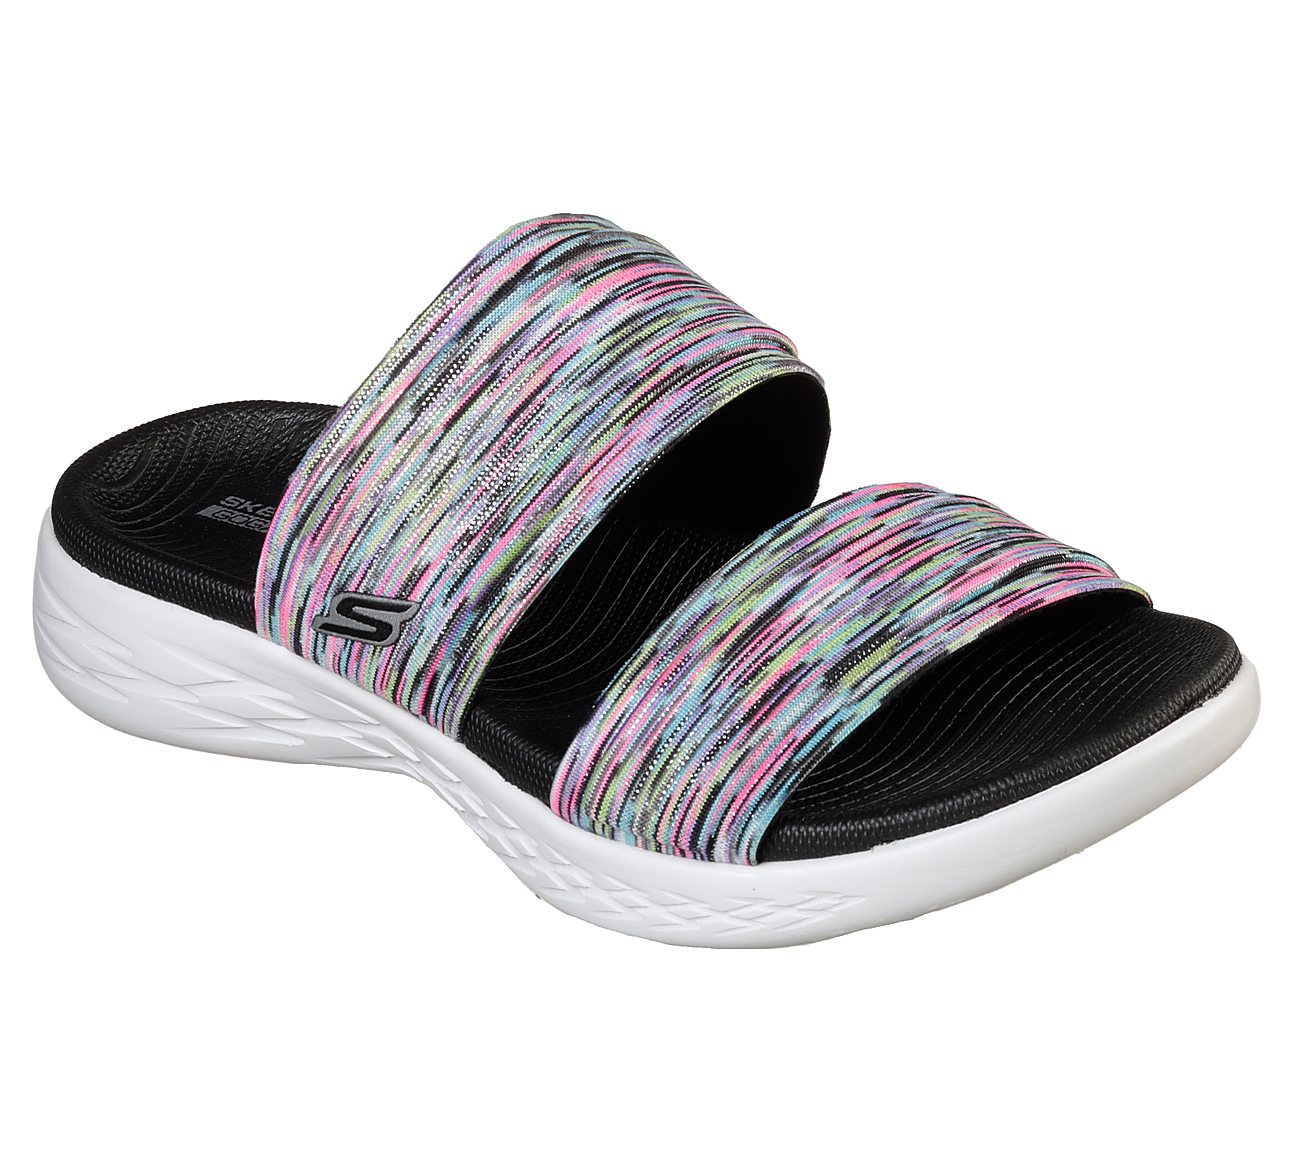 Skechers On the GO 600 - Bedazzling